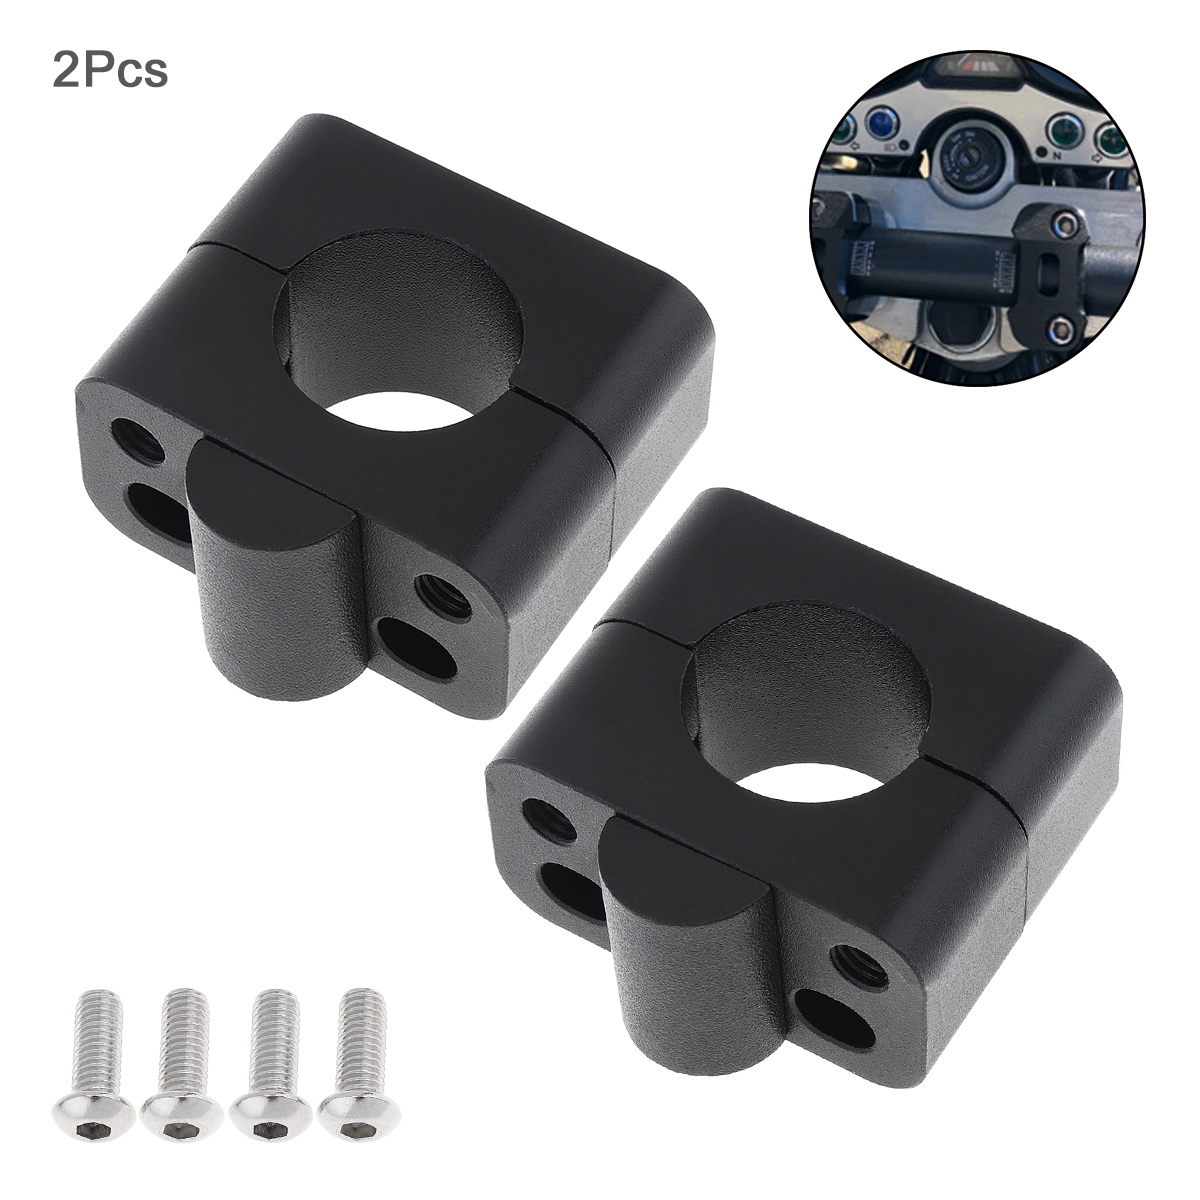 2pcs Motorcycle Handlebar Mounting Fixture Adapter 5.6CM Installation for Motorbike